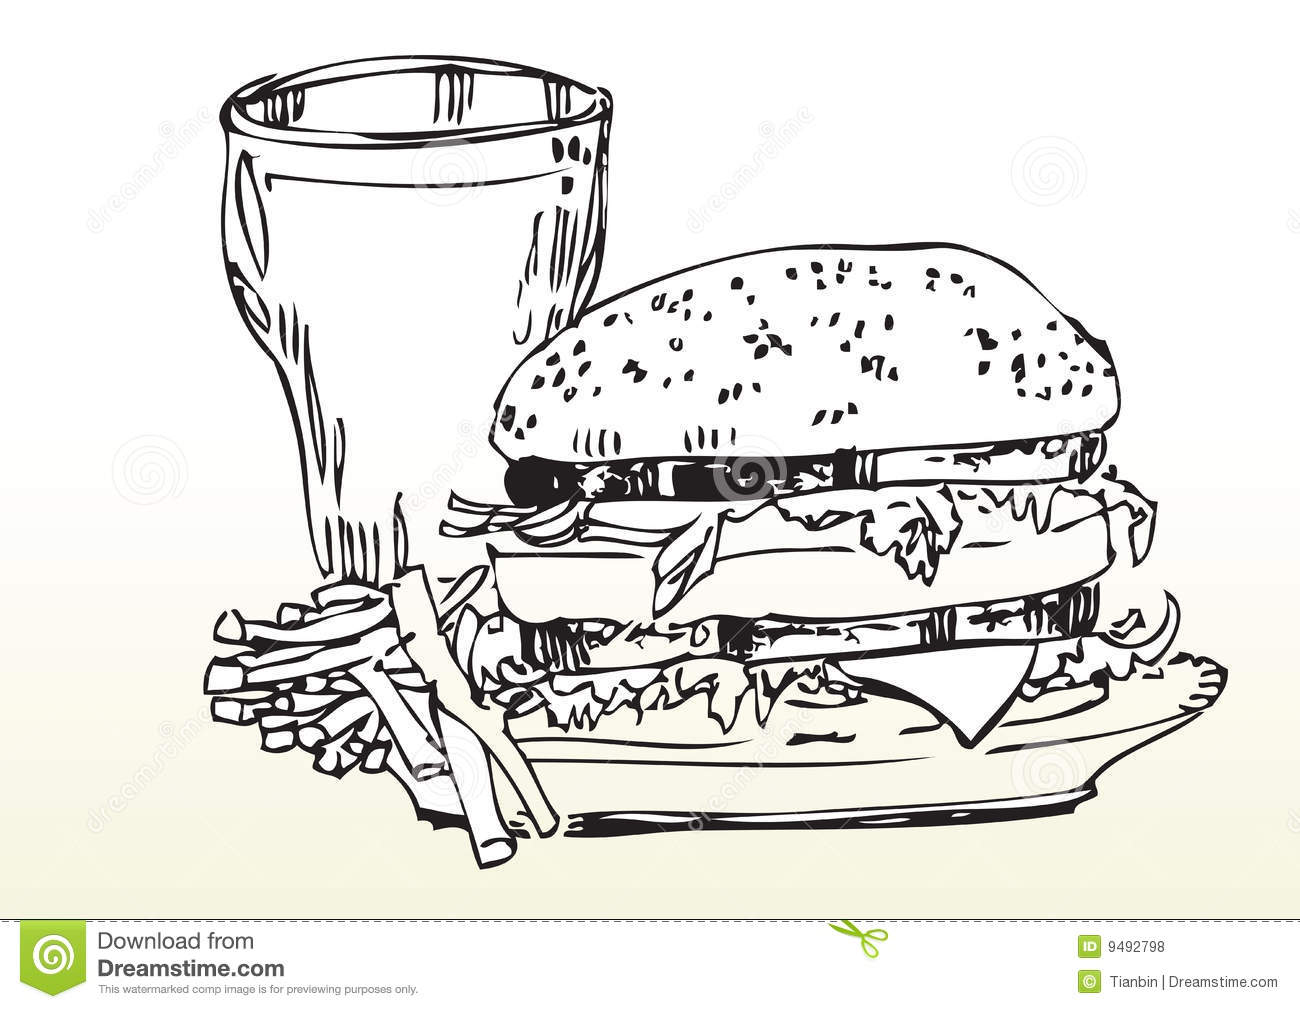 Fast Food Meal Drawing Royalty Free Stock Photos - Image: 9492798